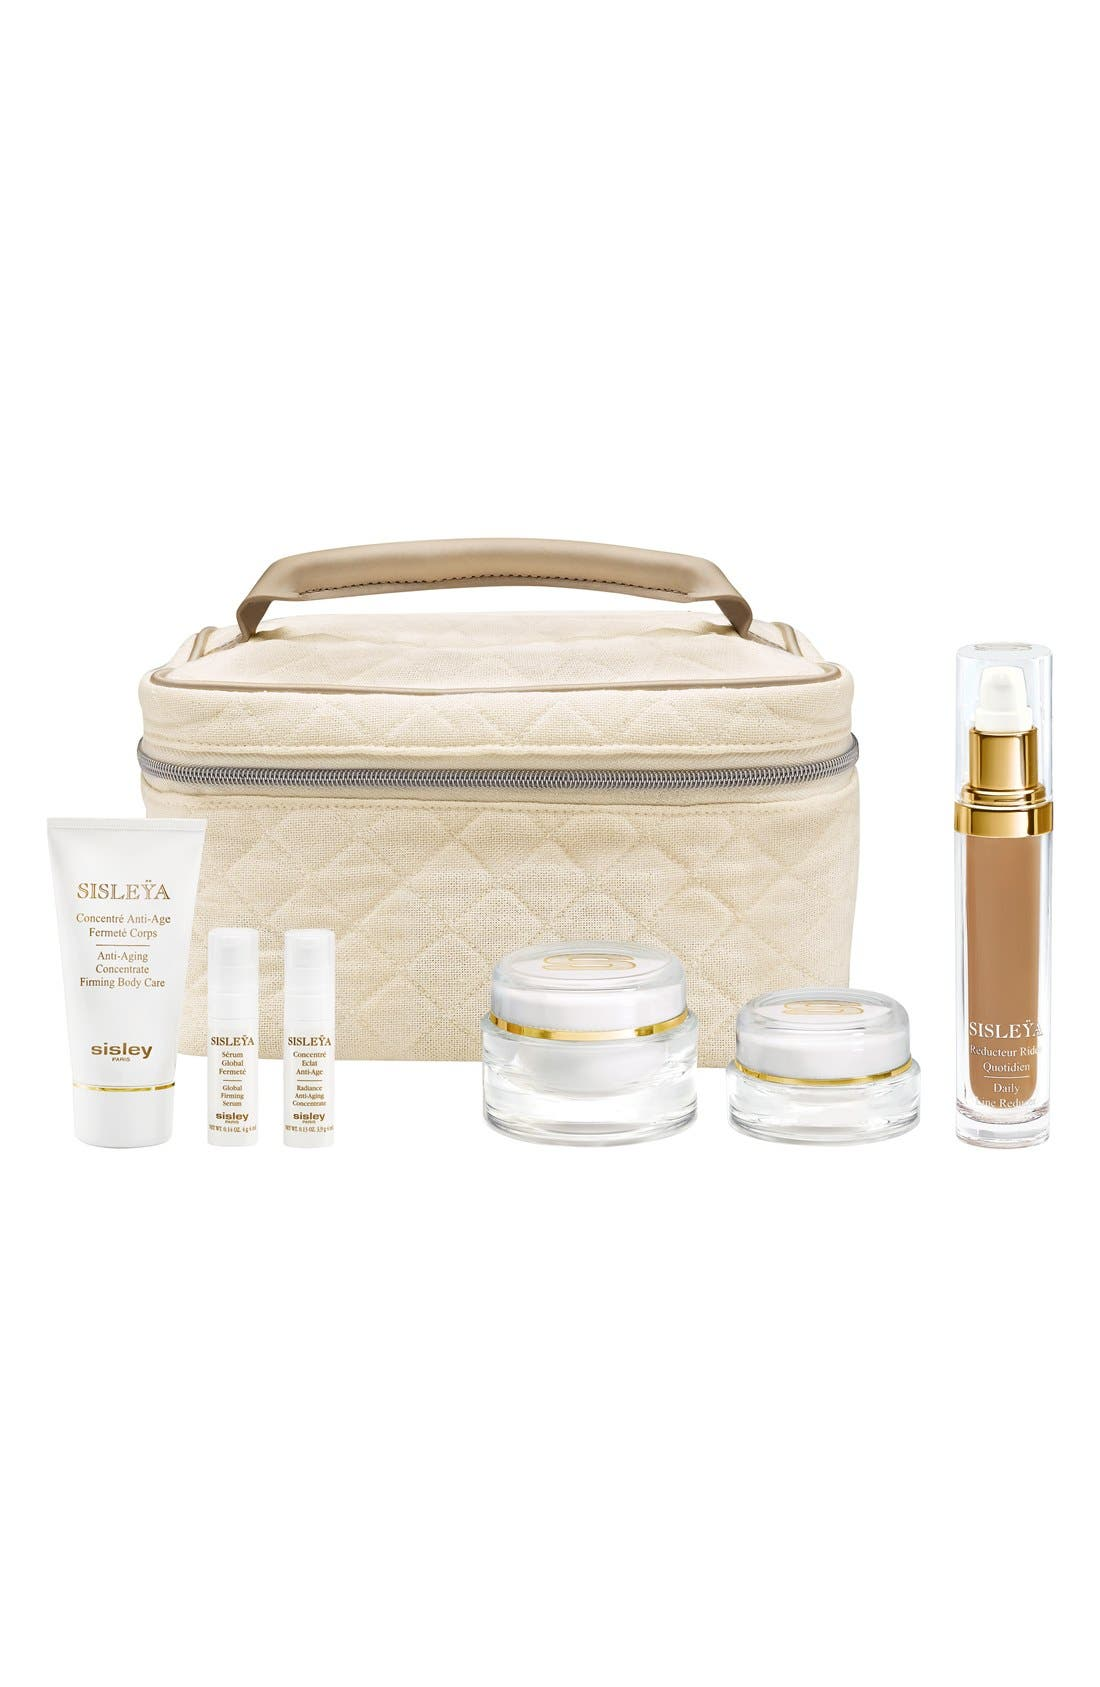 Sisley Paris Vanity Prestige Anti-Aging Kit ($1,540 Value)